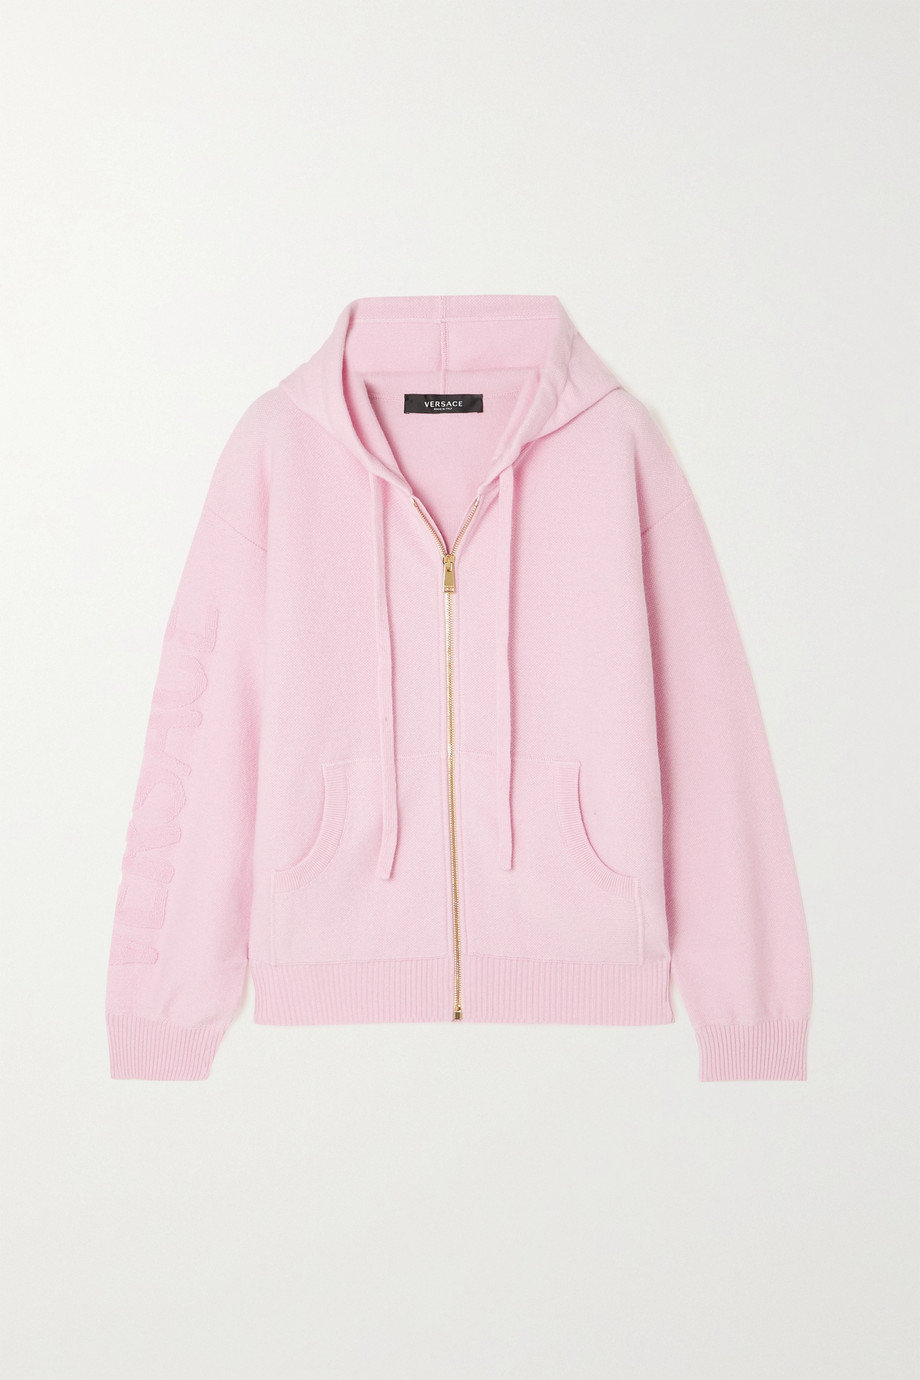 Versace Appliquéd wool and cashmere-blend terry hoodie